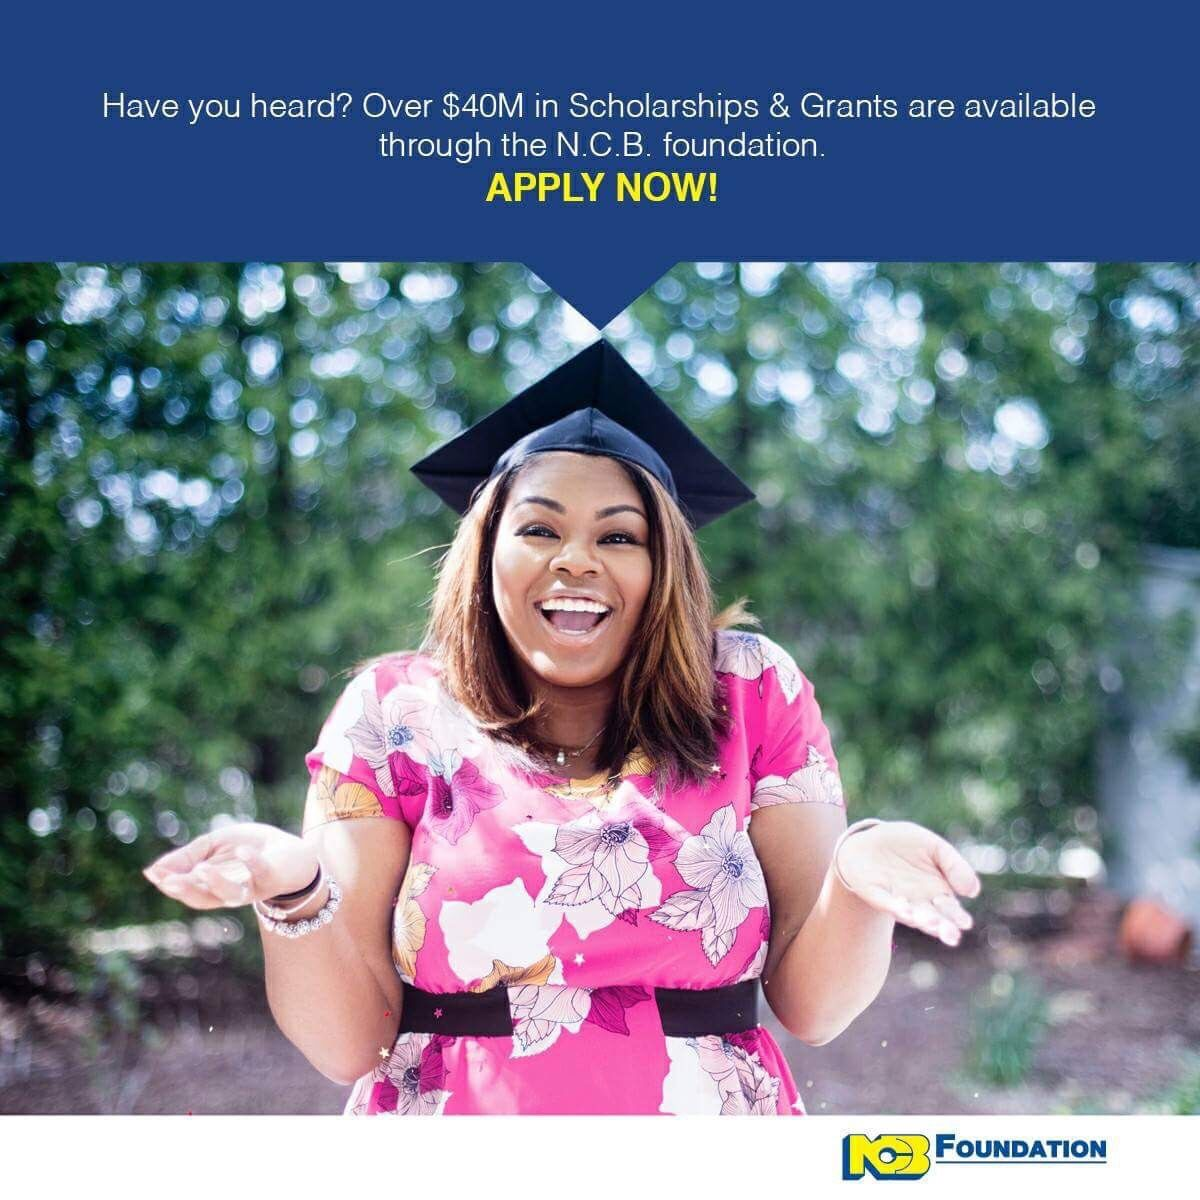 Have you heard? Over 40M available in Scholarships